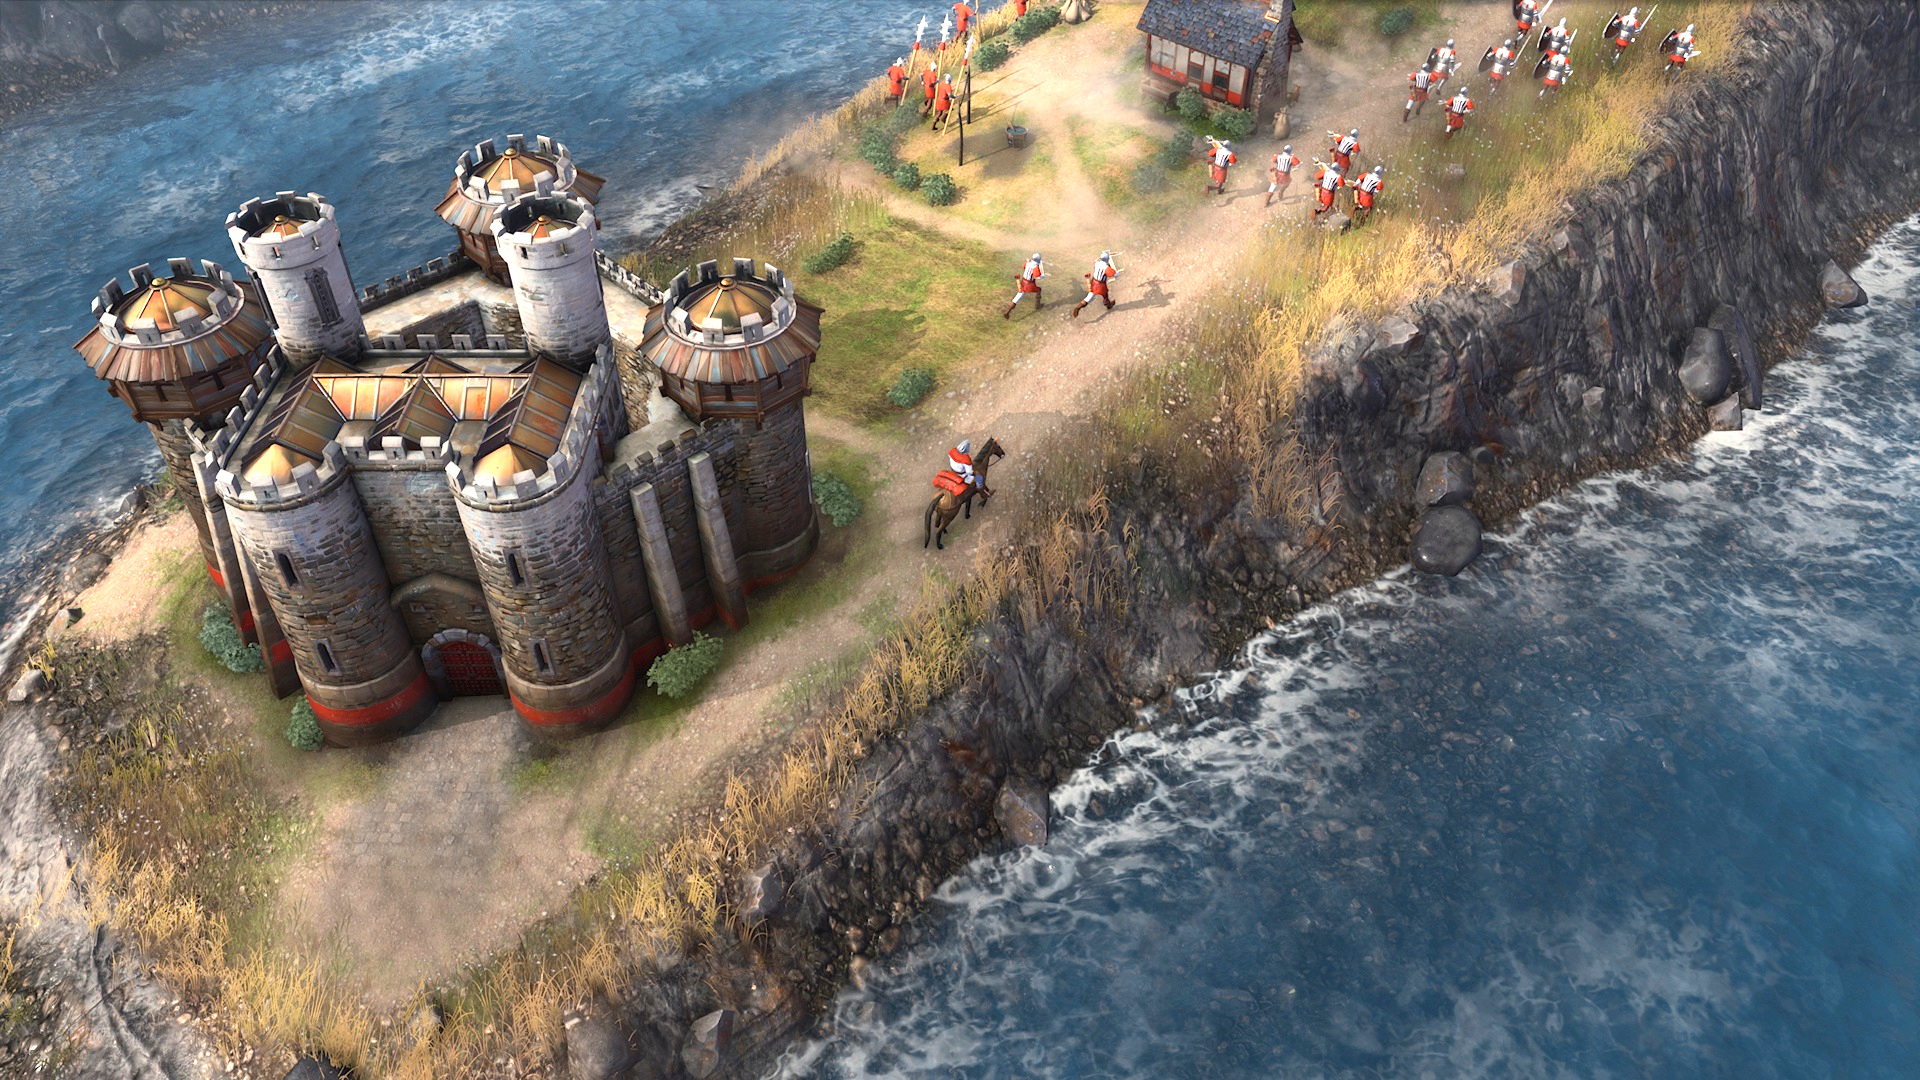 Age of Empires 4 isn't out yet, but fans are already deciding what DLC they want first